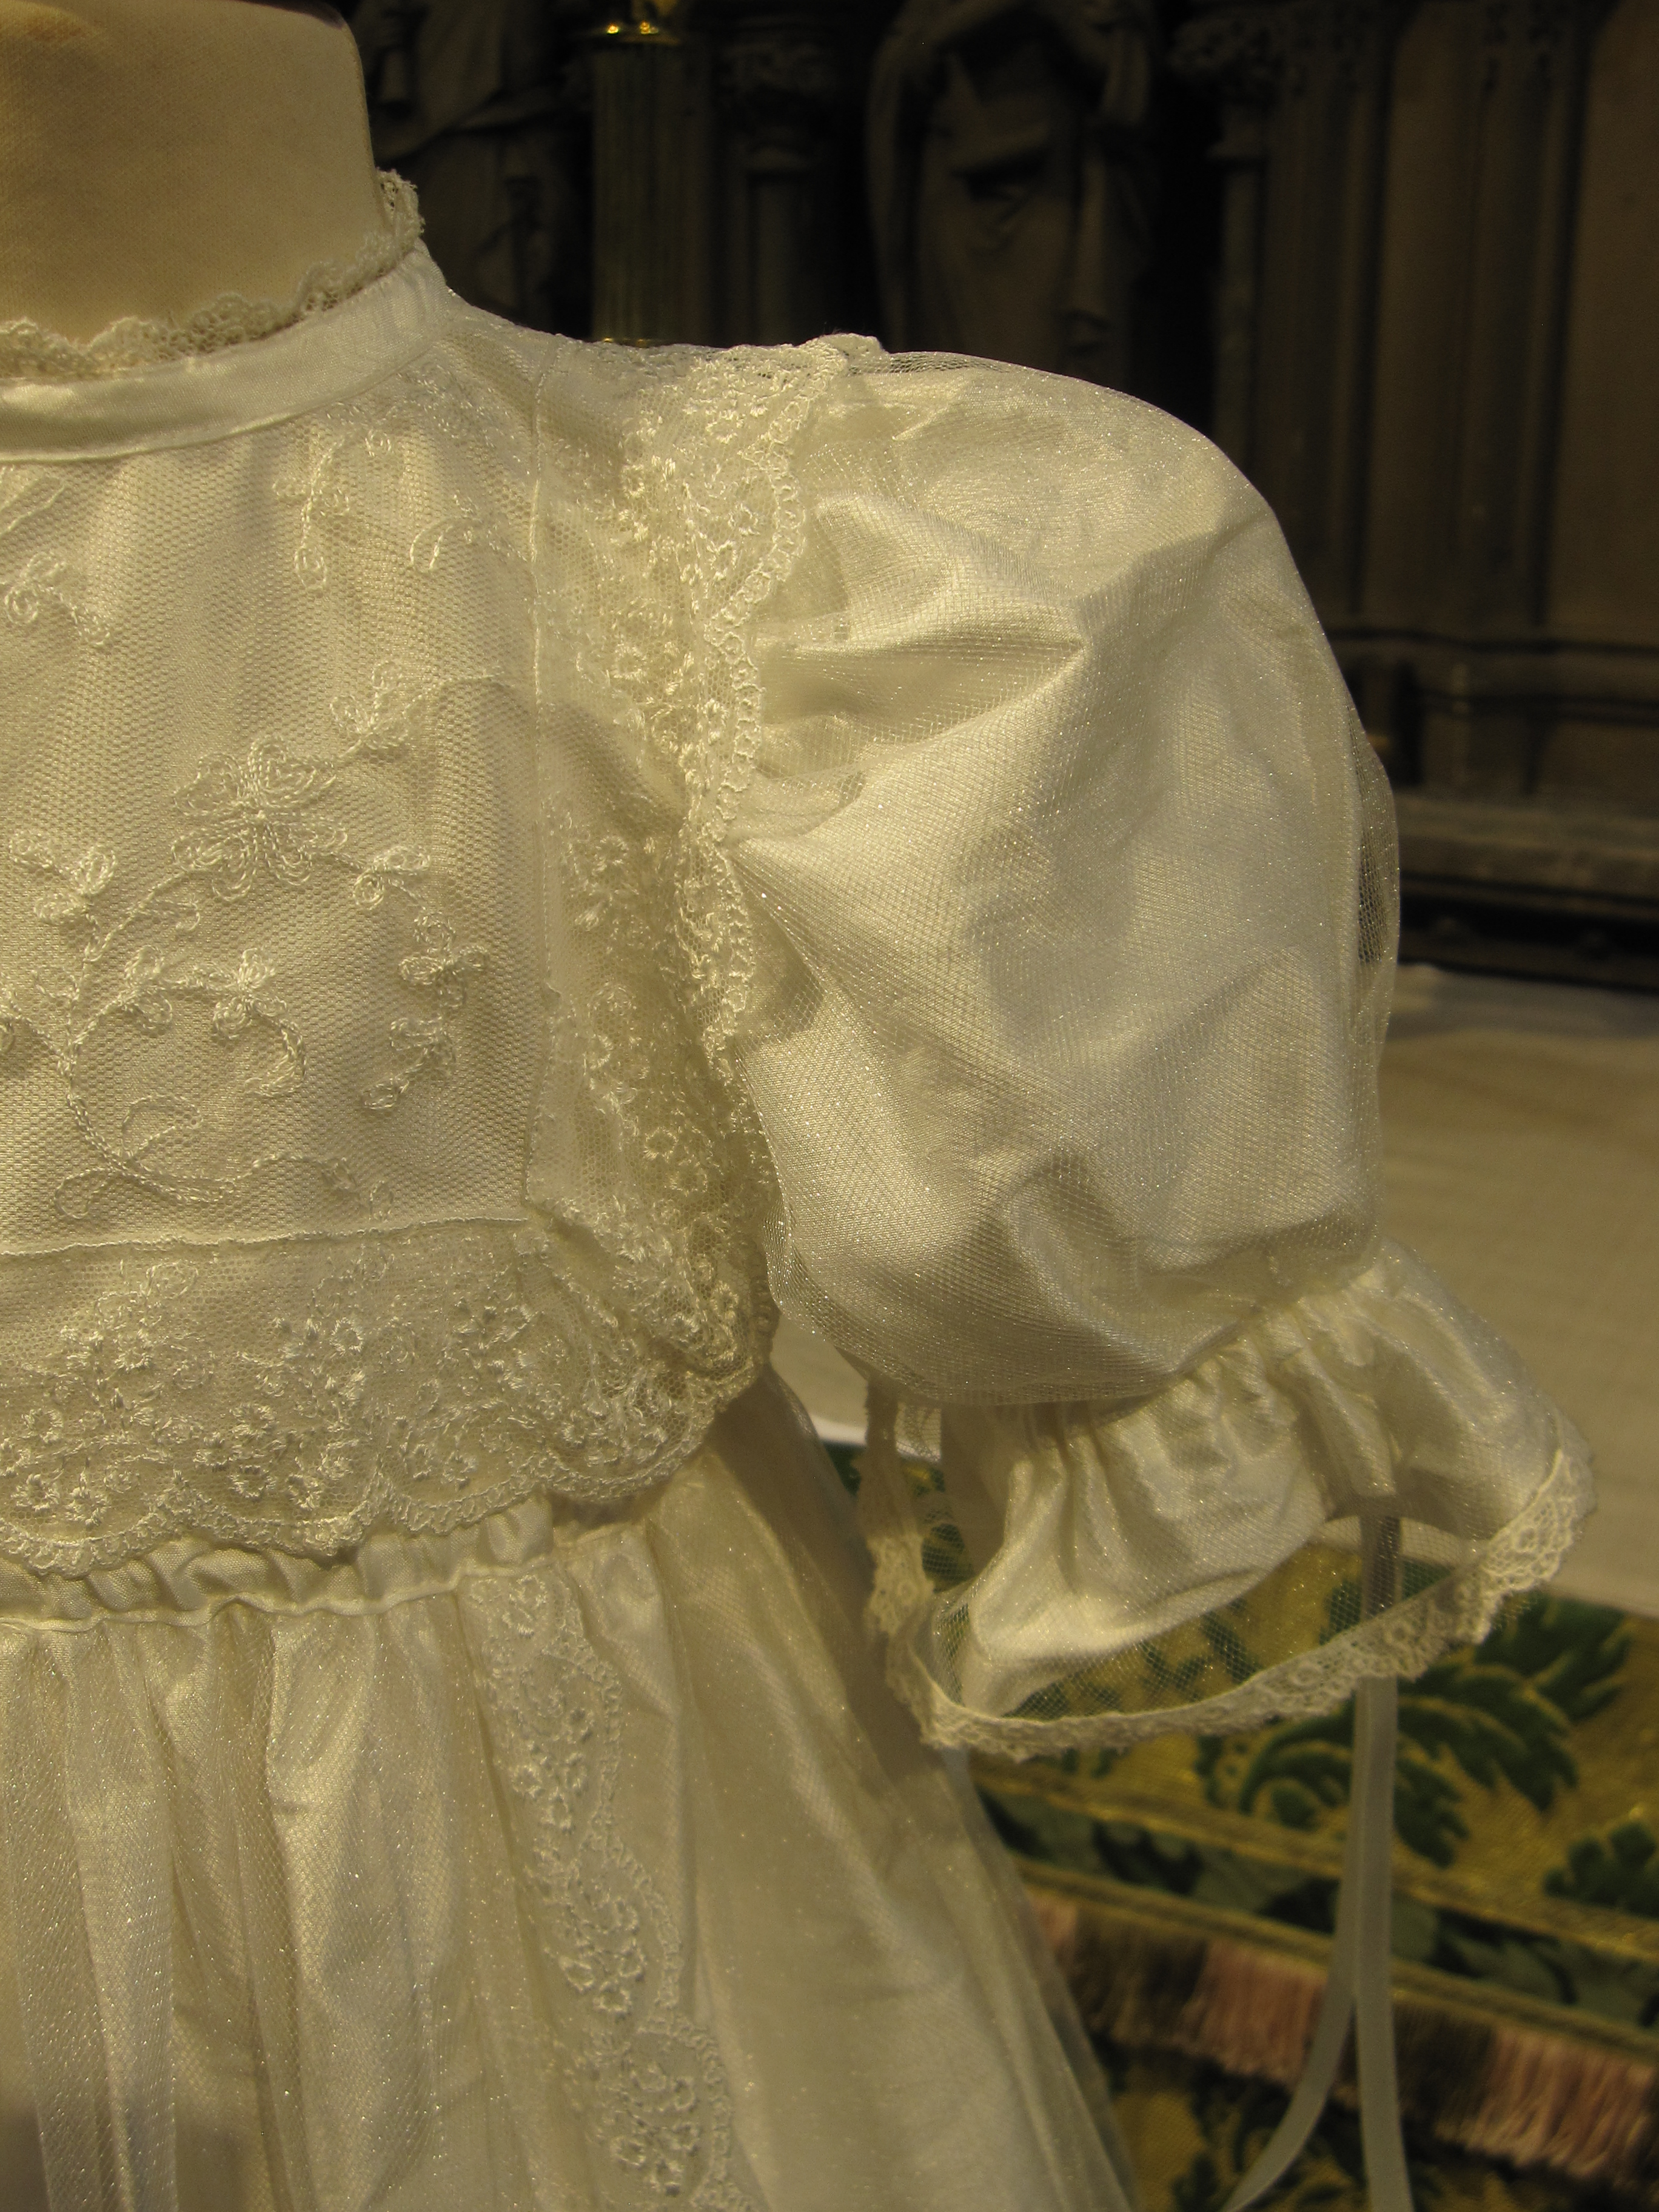 Heirloom Lace Christening Gown   Baby Baptism Gown